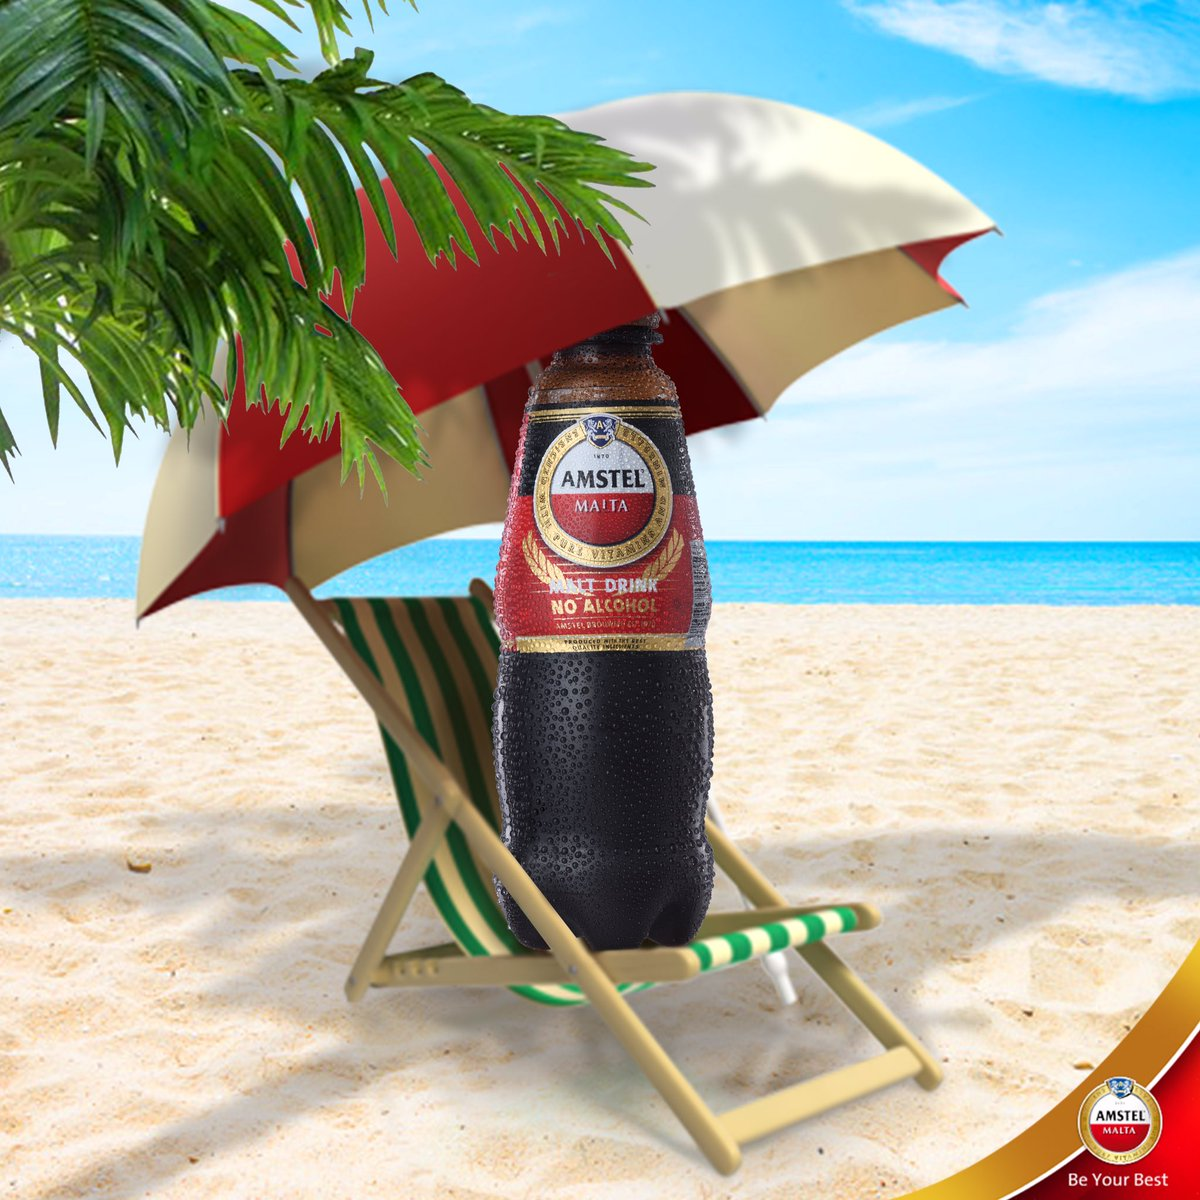 Just chilling, waiting on the weekend like... *Sips Amstel Malta*   #FridayVibes #LiveYourBestLife #AmstelMalta<br>http://pic.twitter.com/tMcovTnLkv